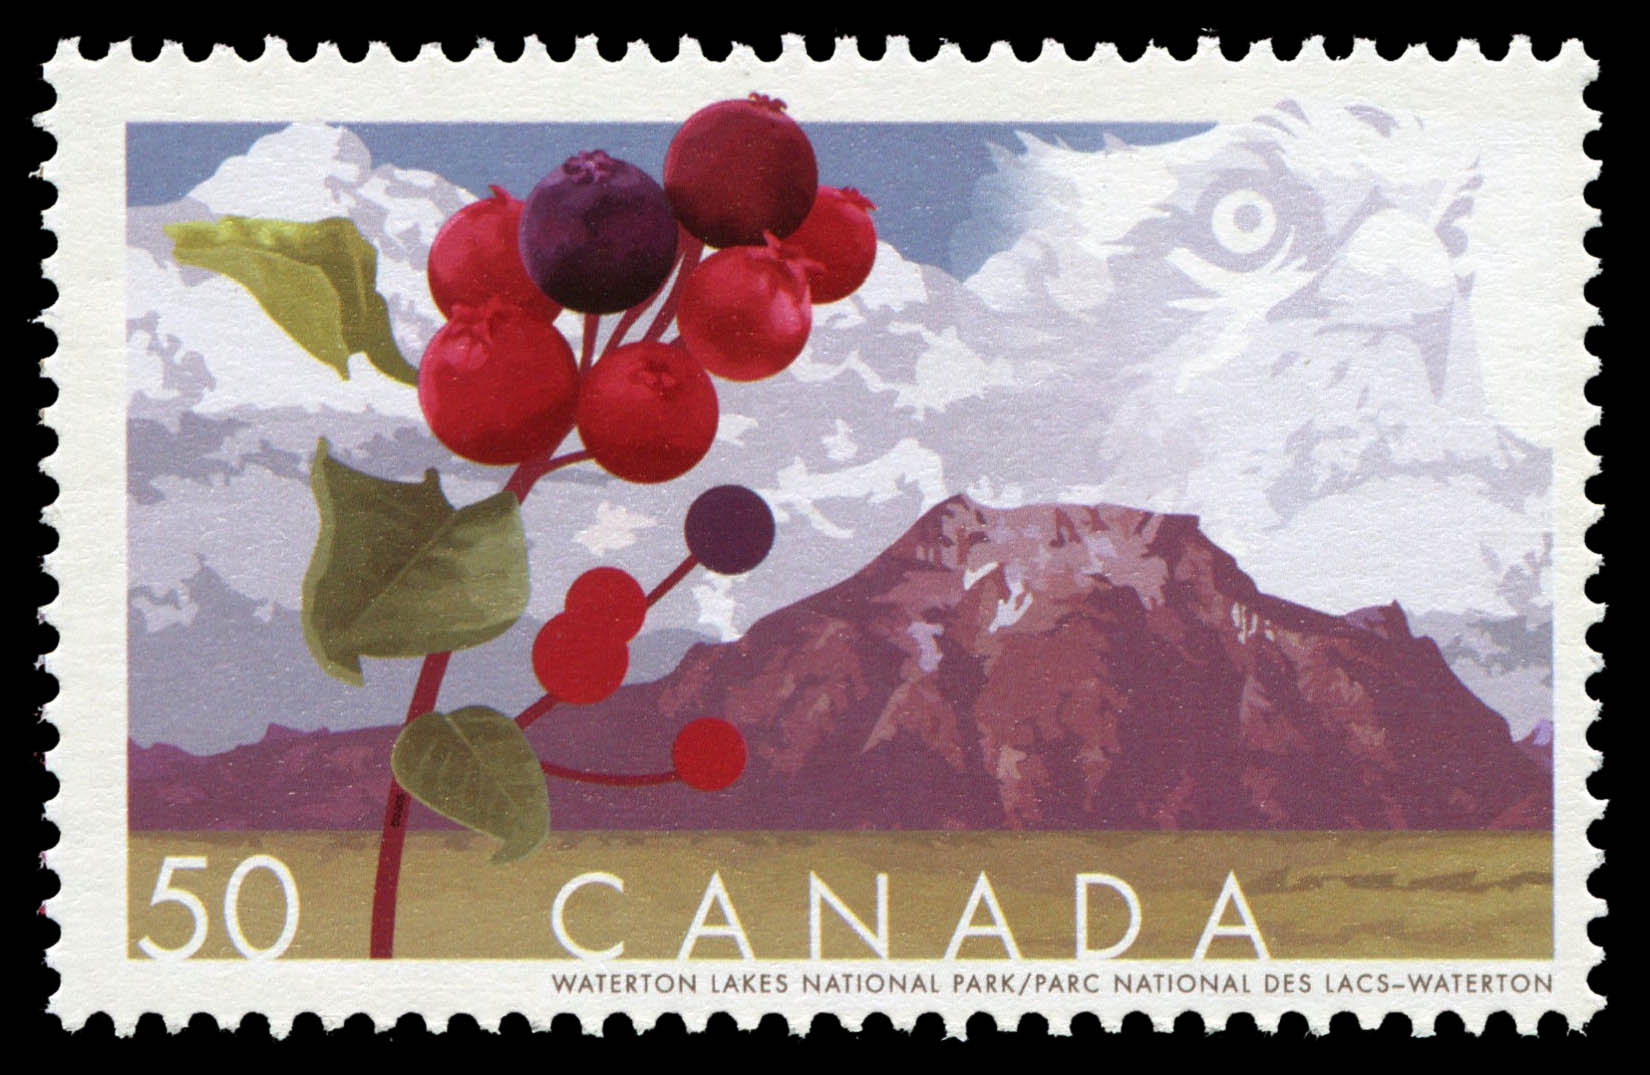 Waterton Lakes National Park Canada Postage Stamp | Biosphere reserves